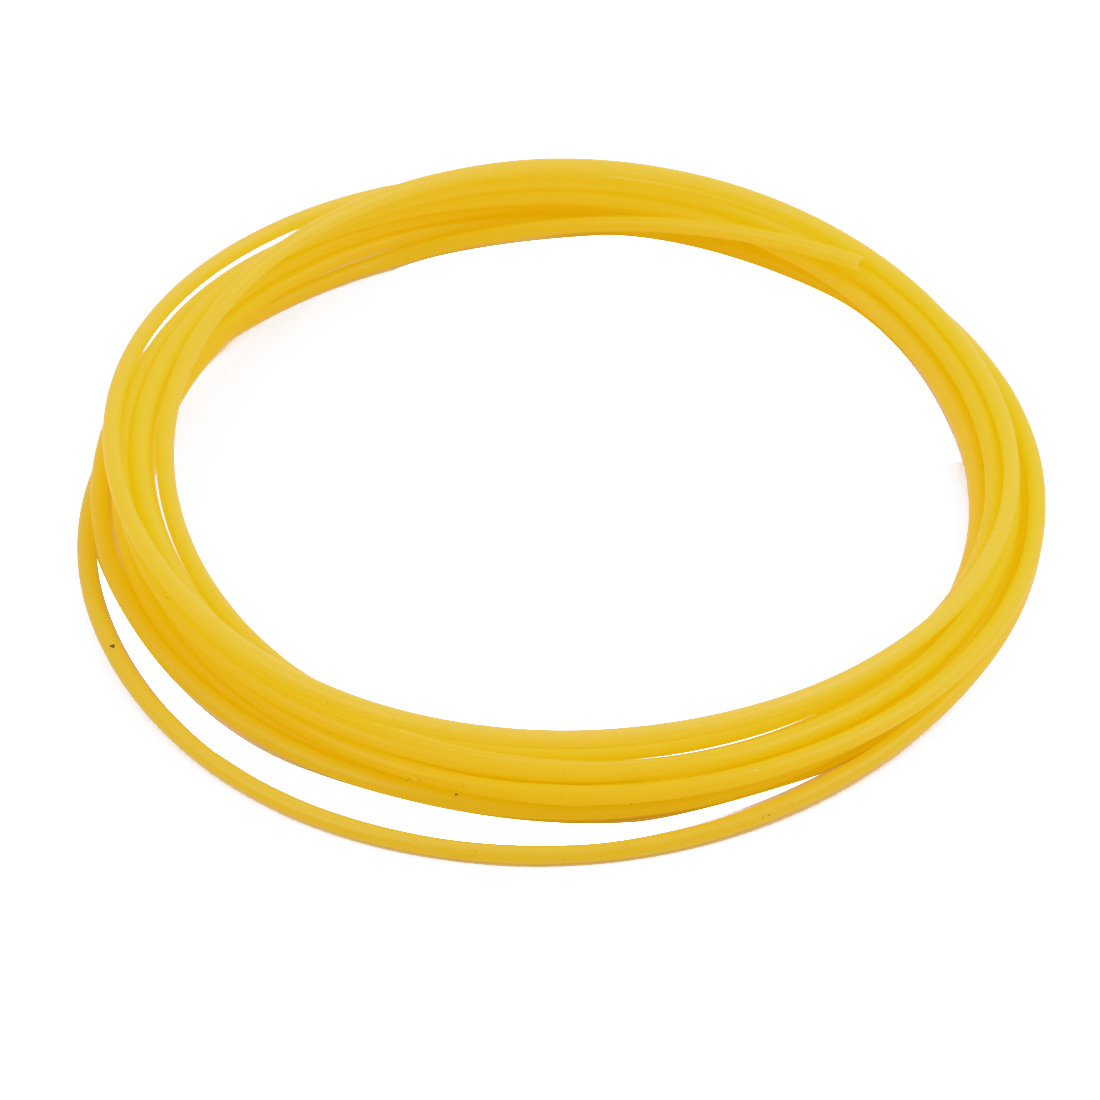 2.41mmx2.81mm PTFE Resistant High Temperature Yellow Tubing 5Meters 16.4Ft